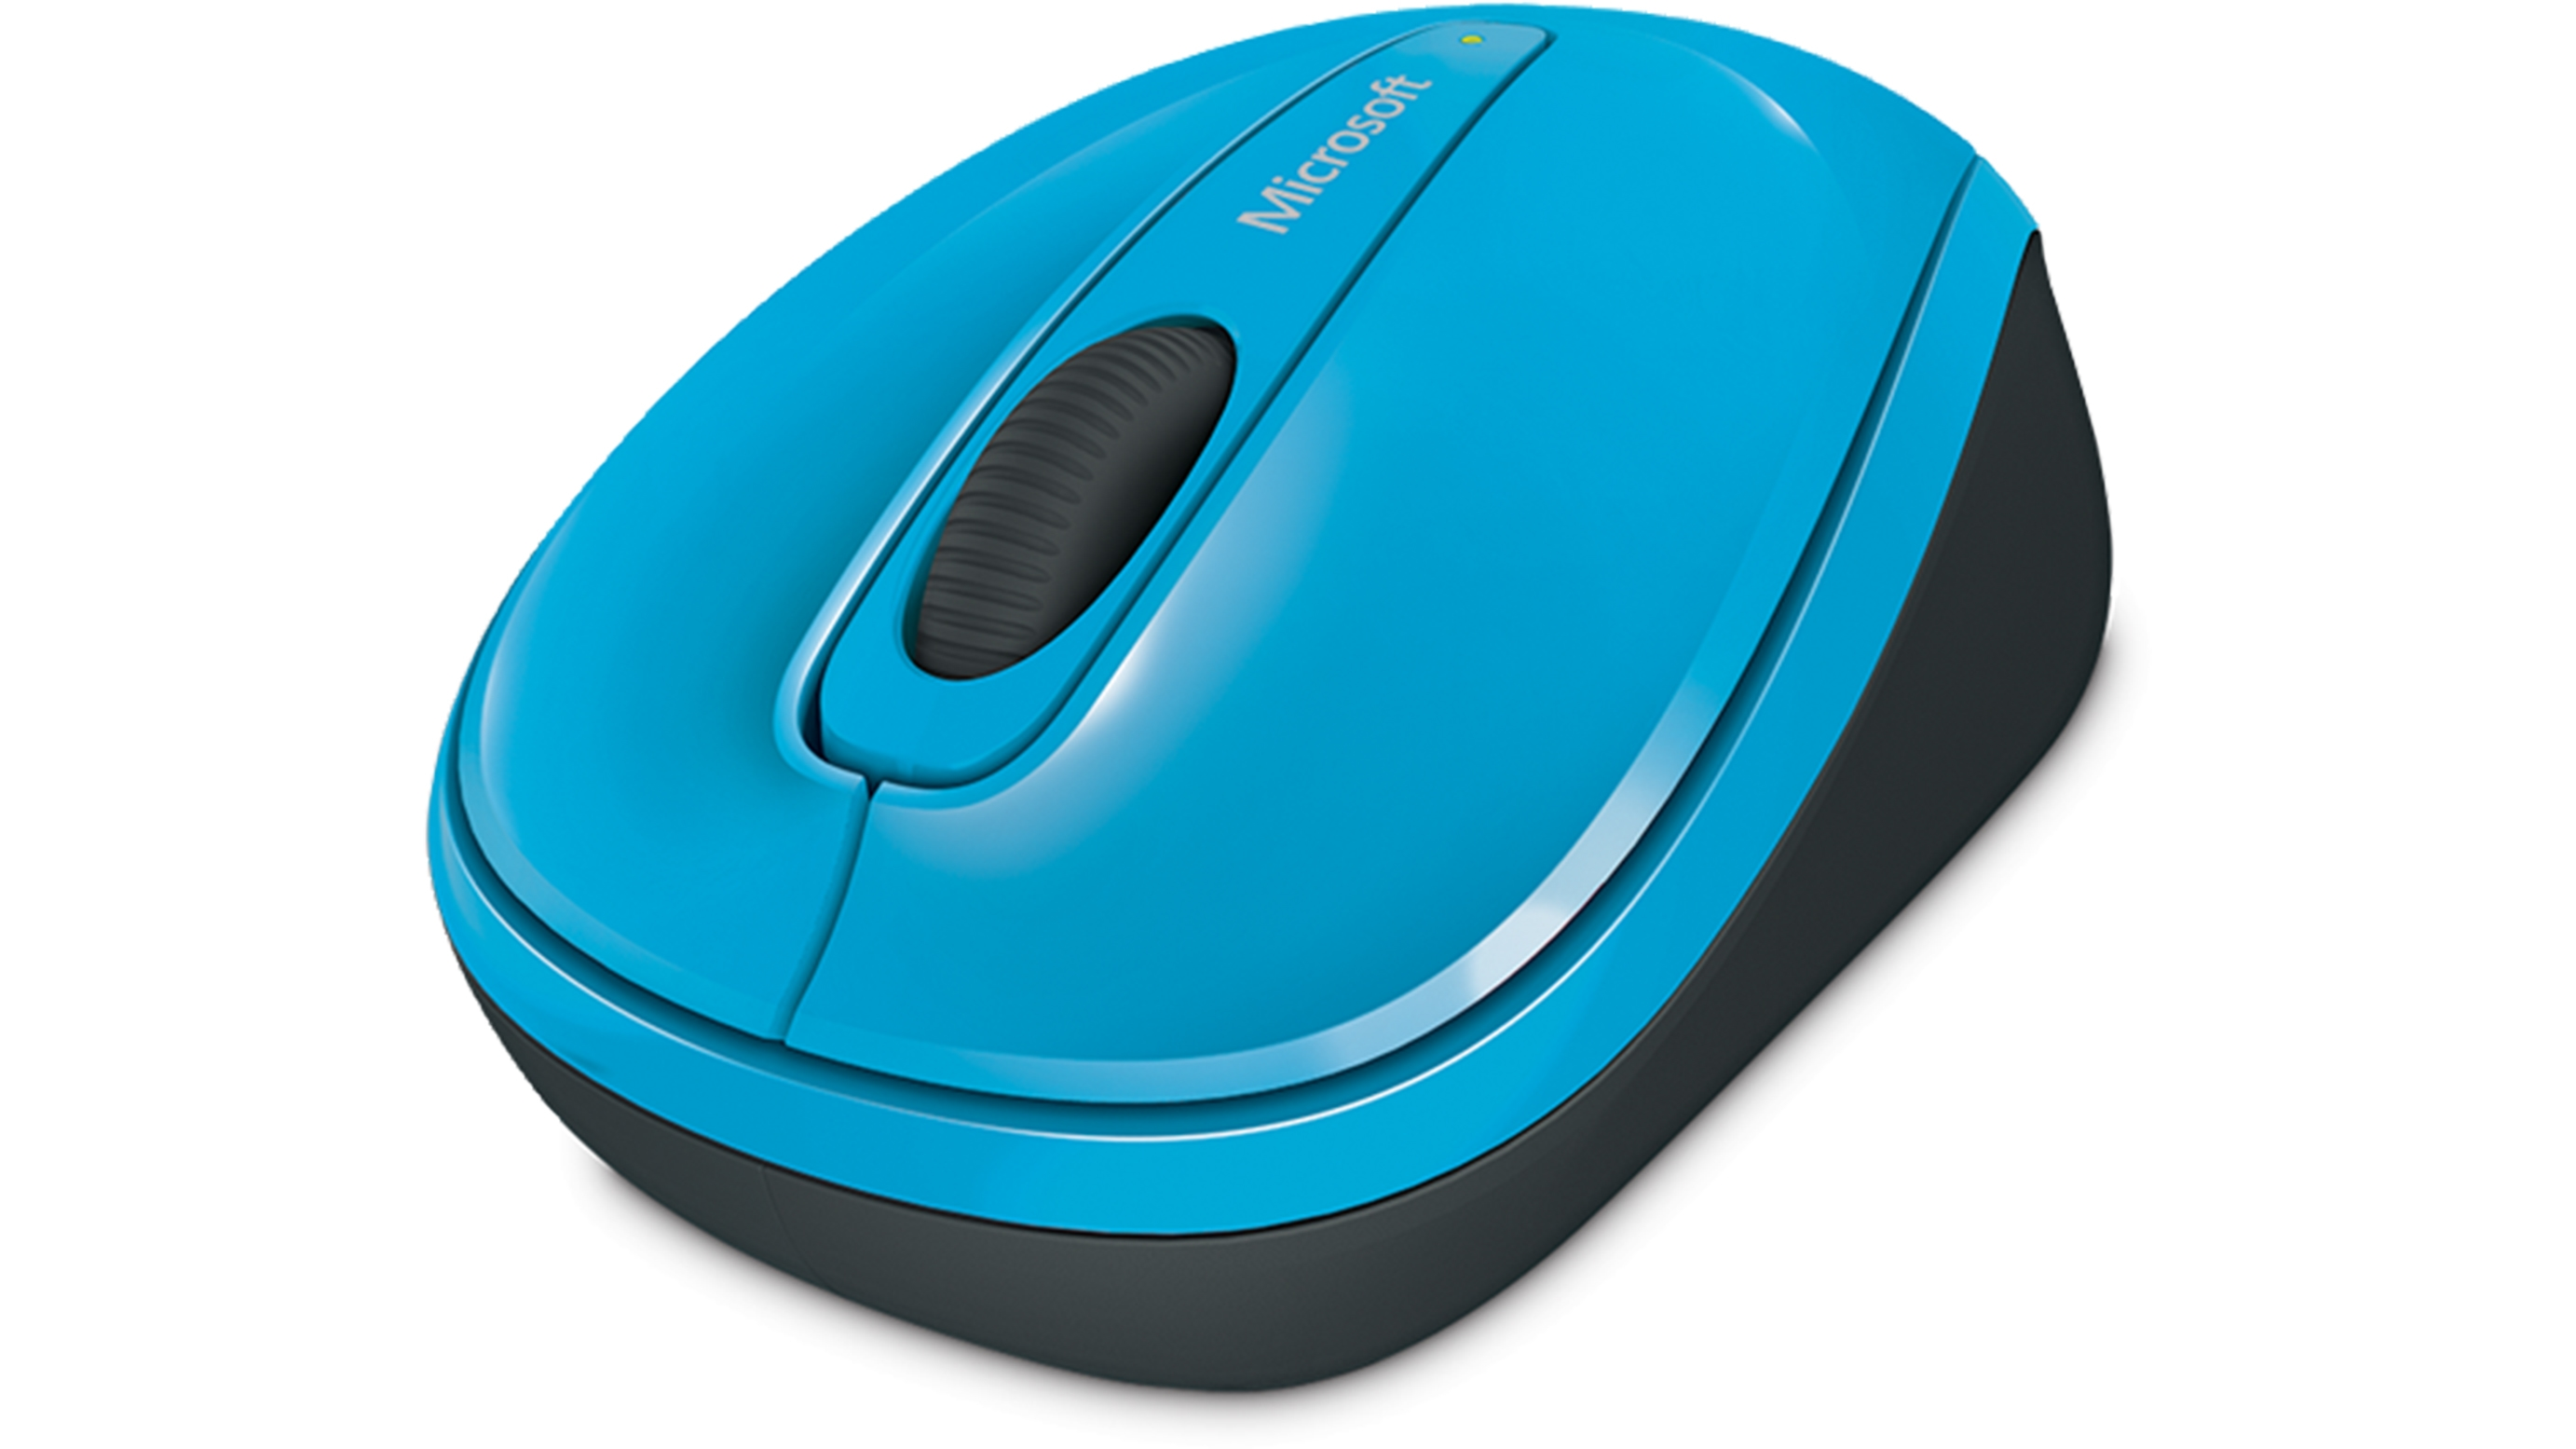 Wireless Mobile Mouse 3500 (Cyan Blue) - Front view